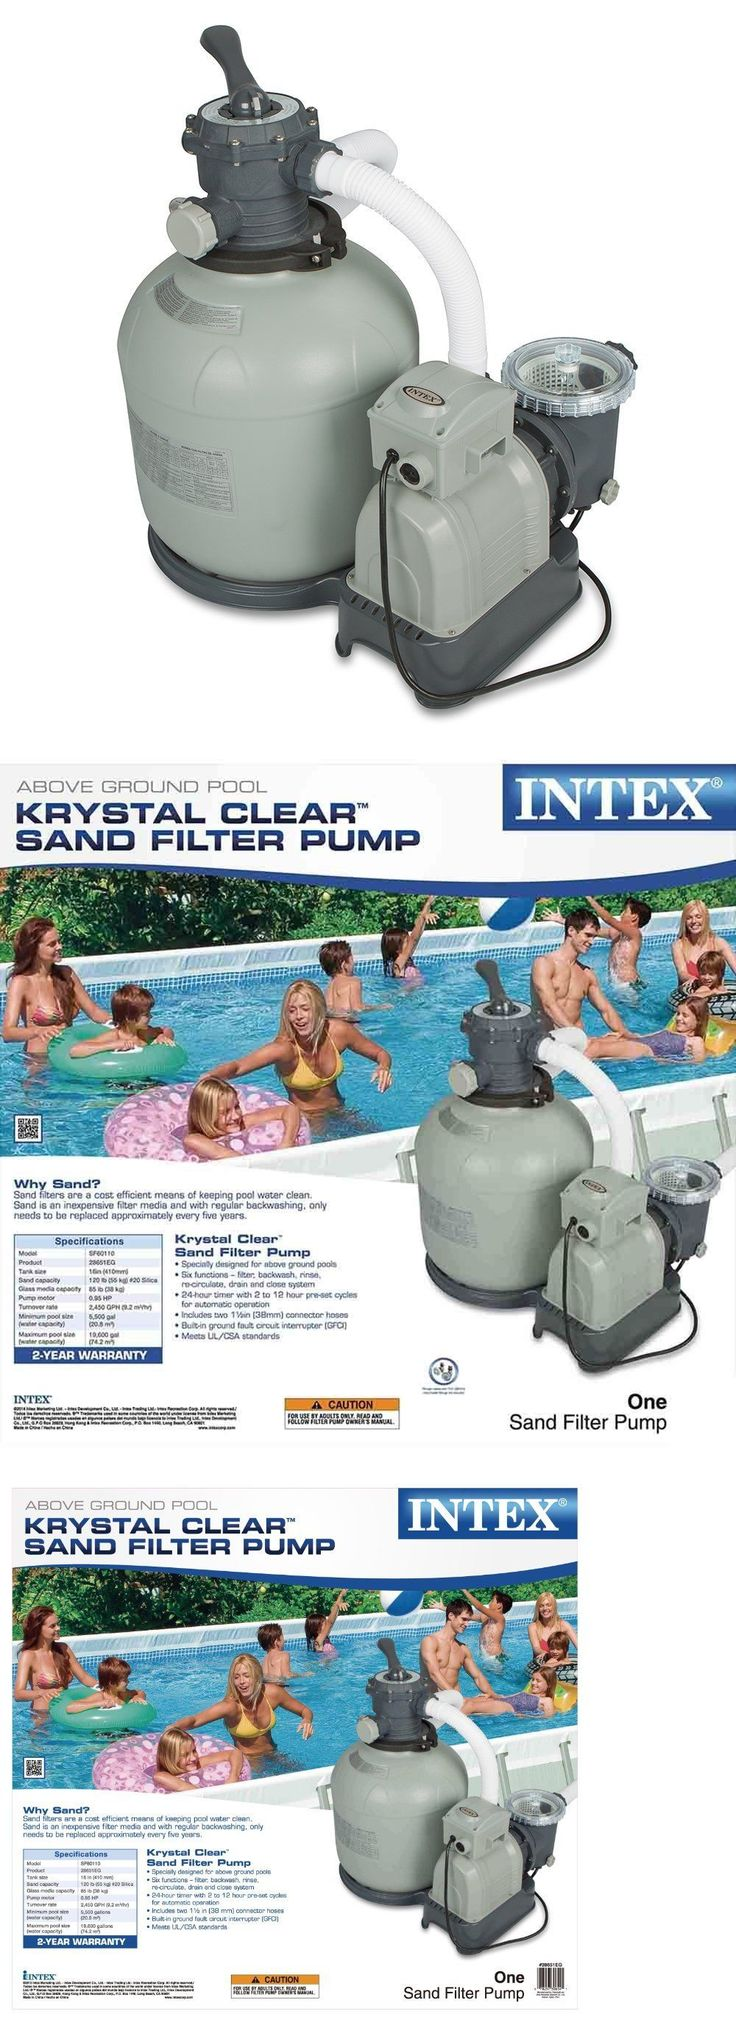 Pool Pumps 181485: Intex Krystal Clear Sand Filter Pump For Above Ground Pools, 3000 Gph System Flo -> BUY IT NOW ONLY: $180.99 on eBay!